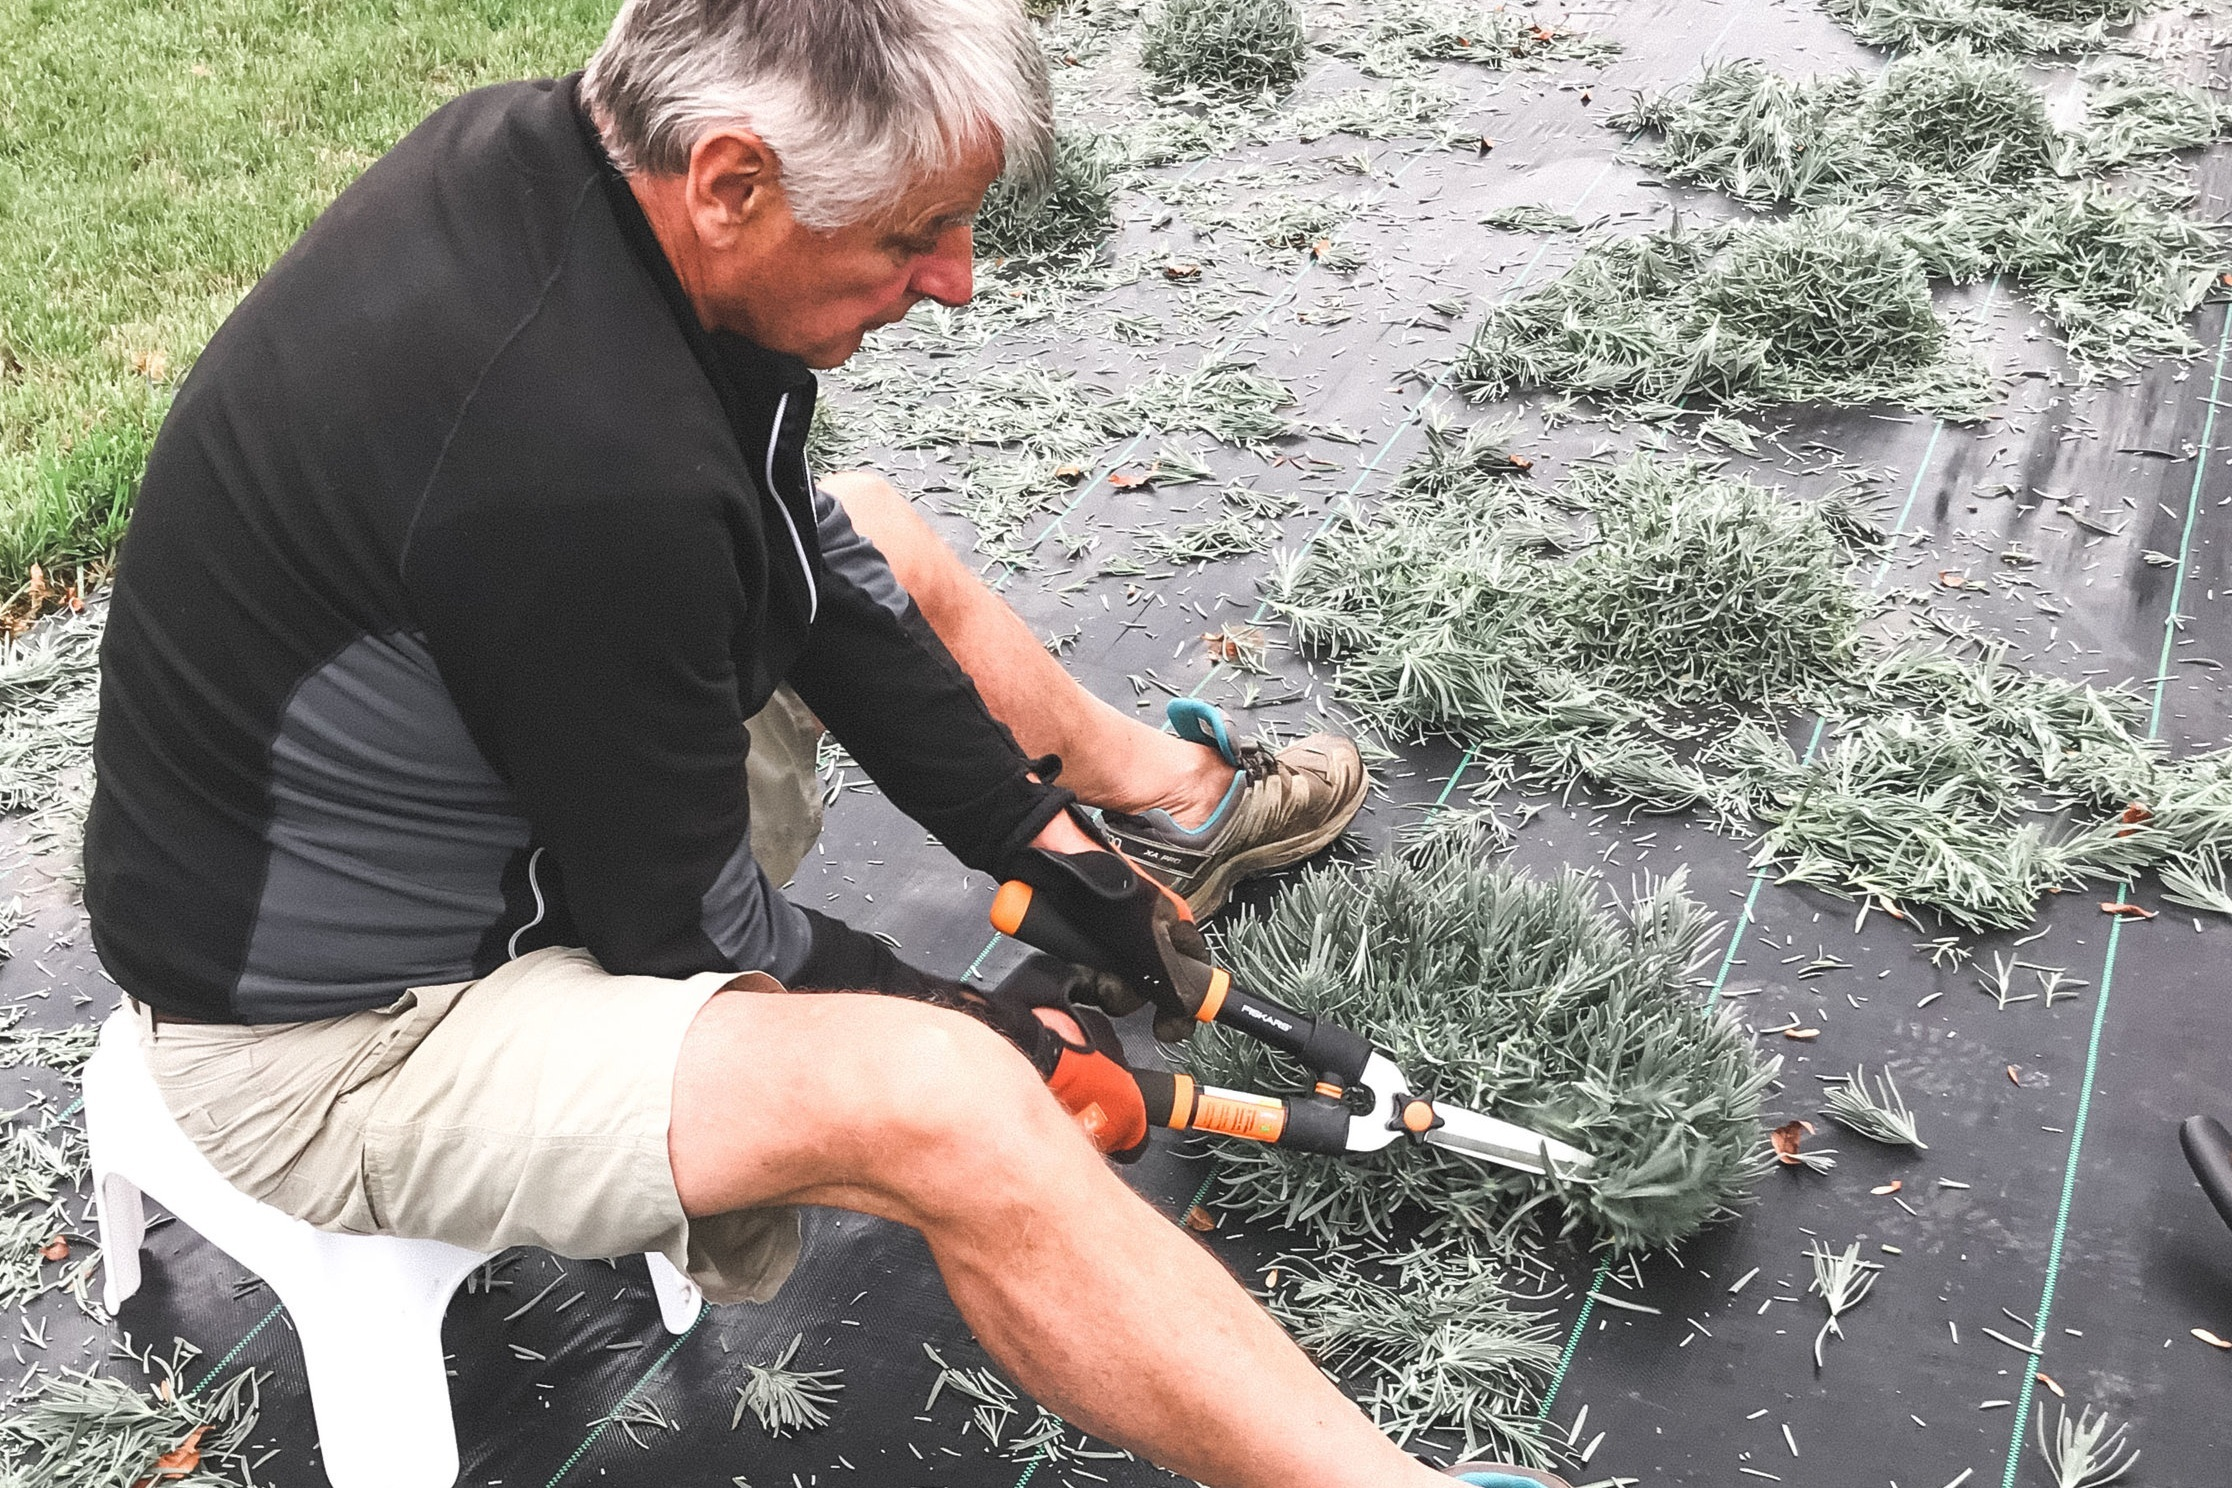 Pruning - By end of August all the plants have to be pruned to prepare them for winter and a productive bloom next year.